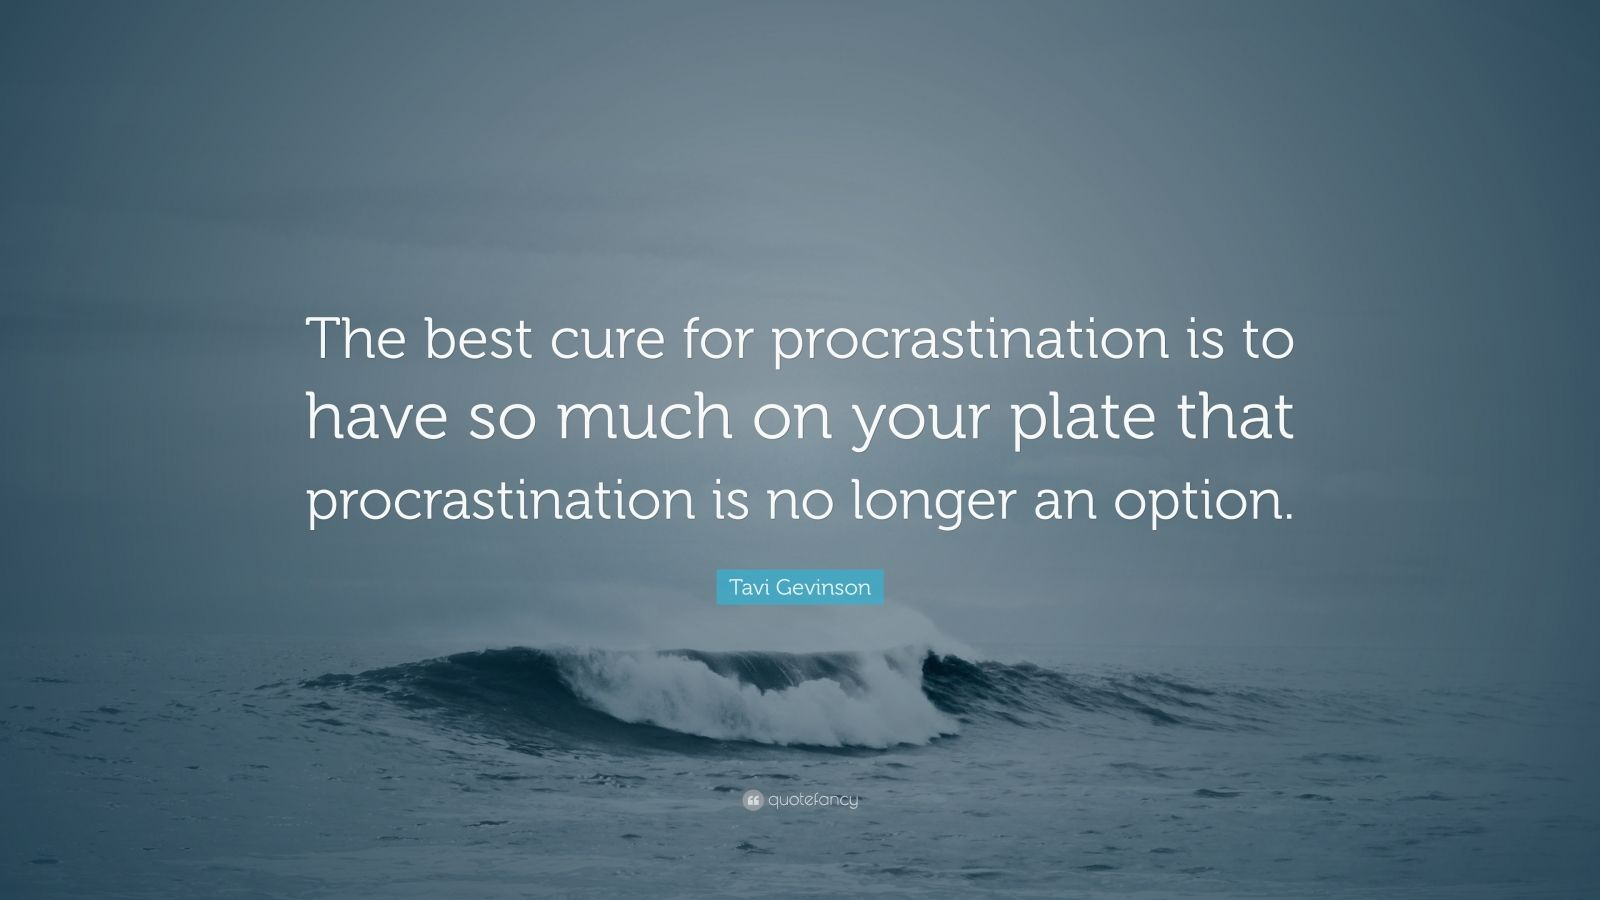 """Tavi Gevinson Quote: """"The best cure for procrastination is to have so much on your plate that procrastination is no longer an option."""""""